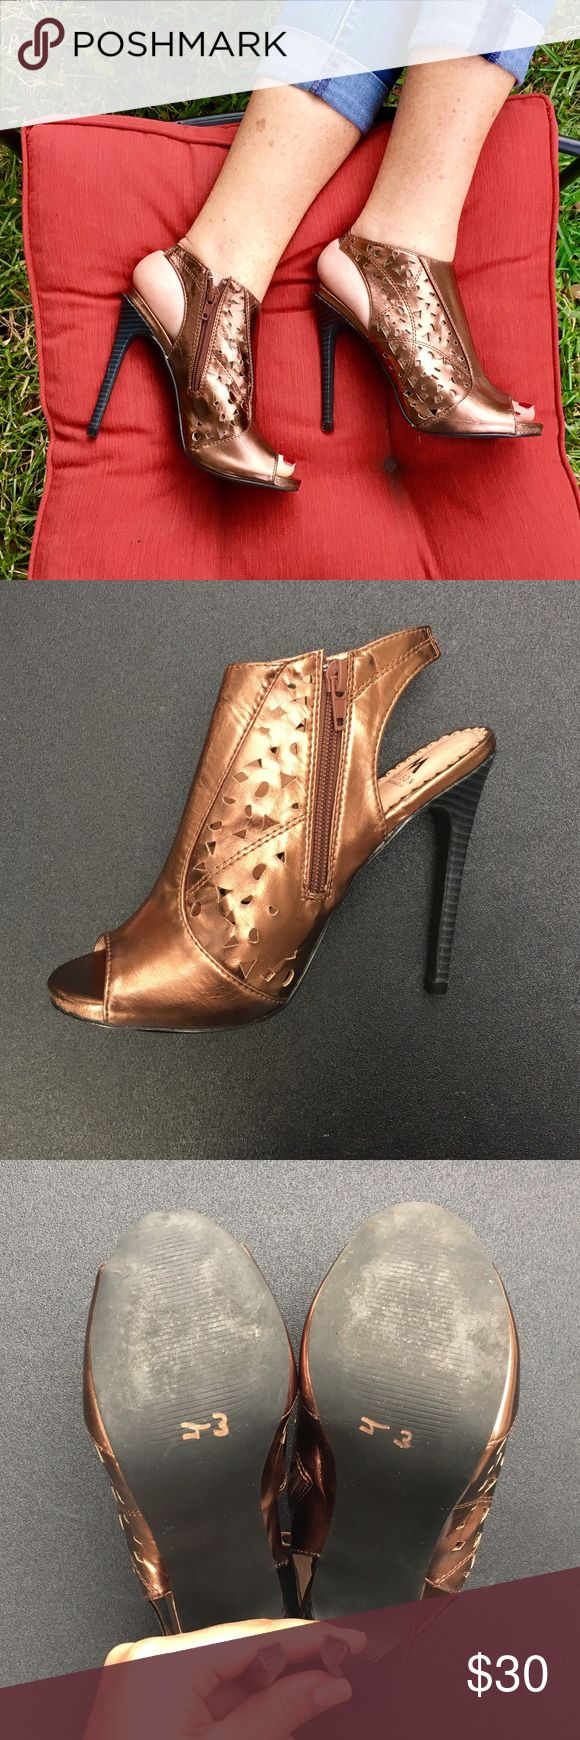 Shoe Dazzle Bronze Heels This fierce pair of bronze heels by Shoe Dazzle are in excellent condition and are a stylish staple in your closet. Shoe Dazzle Shoes Heels